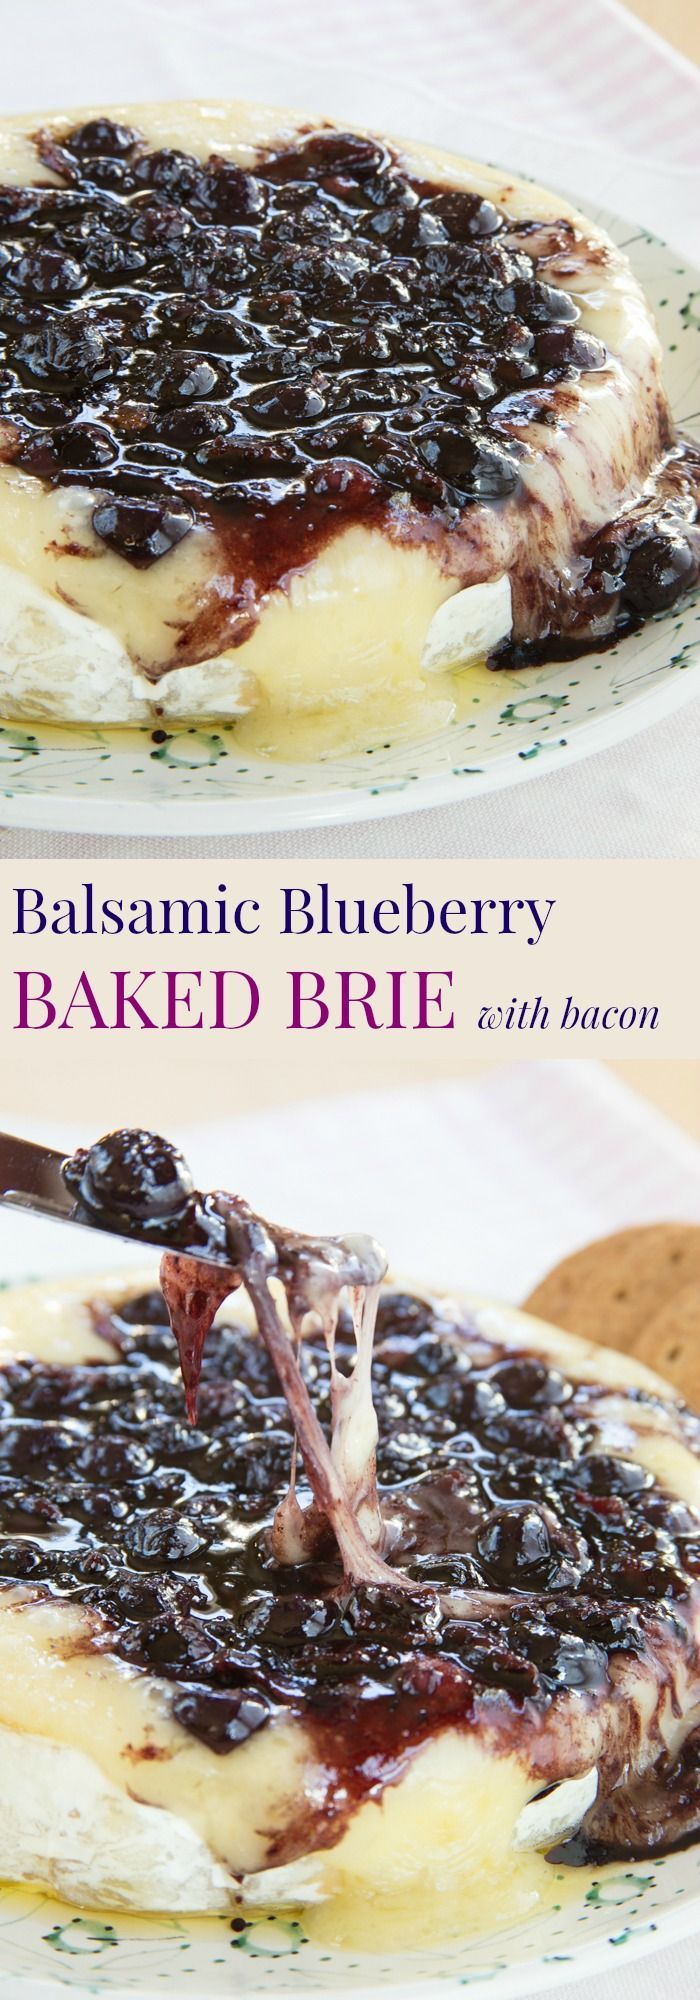 Balsamic Blueberry Baked Brie Recipe with Bacon - an ooey gooey cheesy appetizer recipe with the perfect combo of sweet and savory. A yummy party recipe! #ad | cupcakesandkalechips.com | gluten free